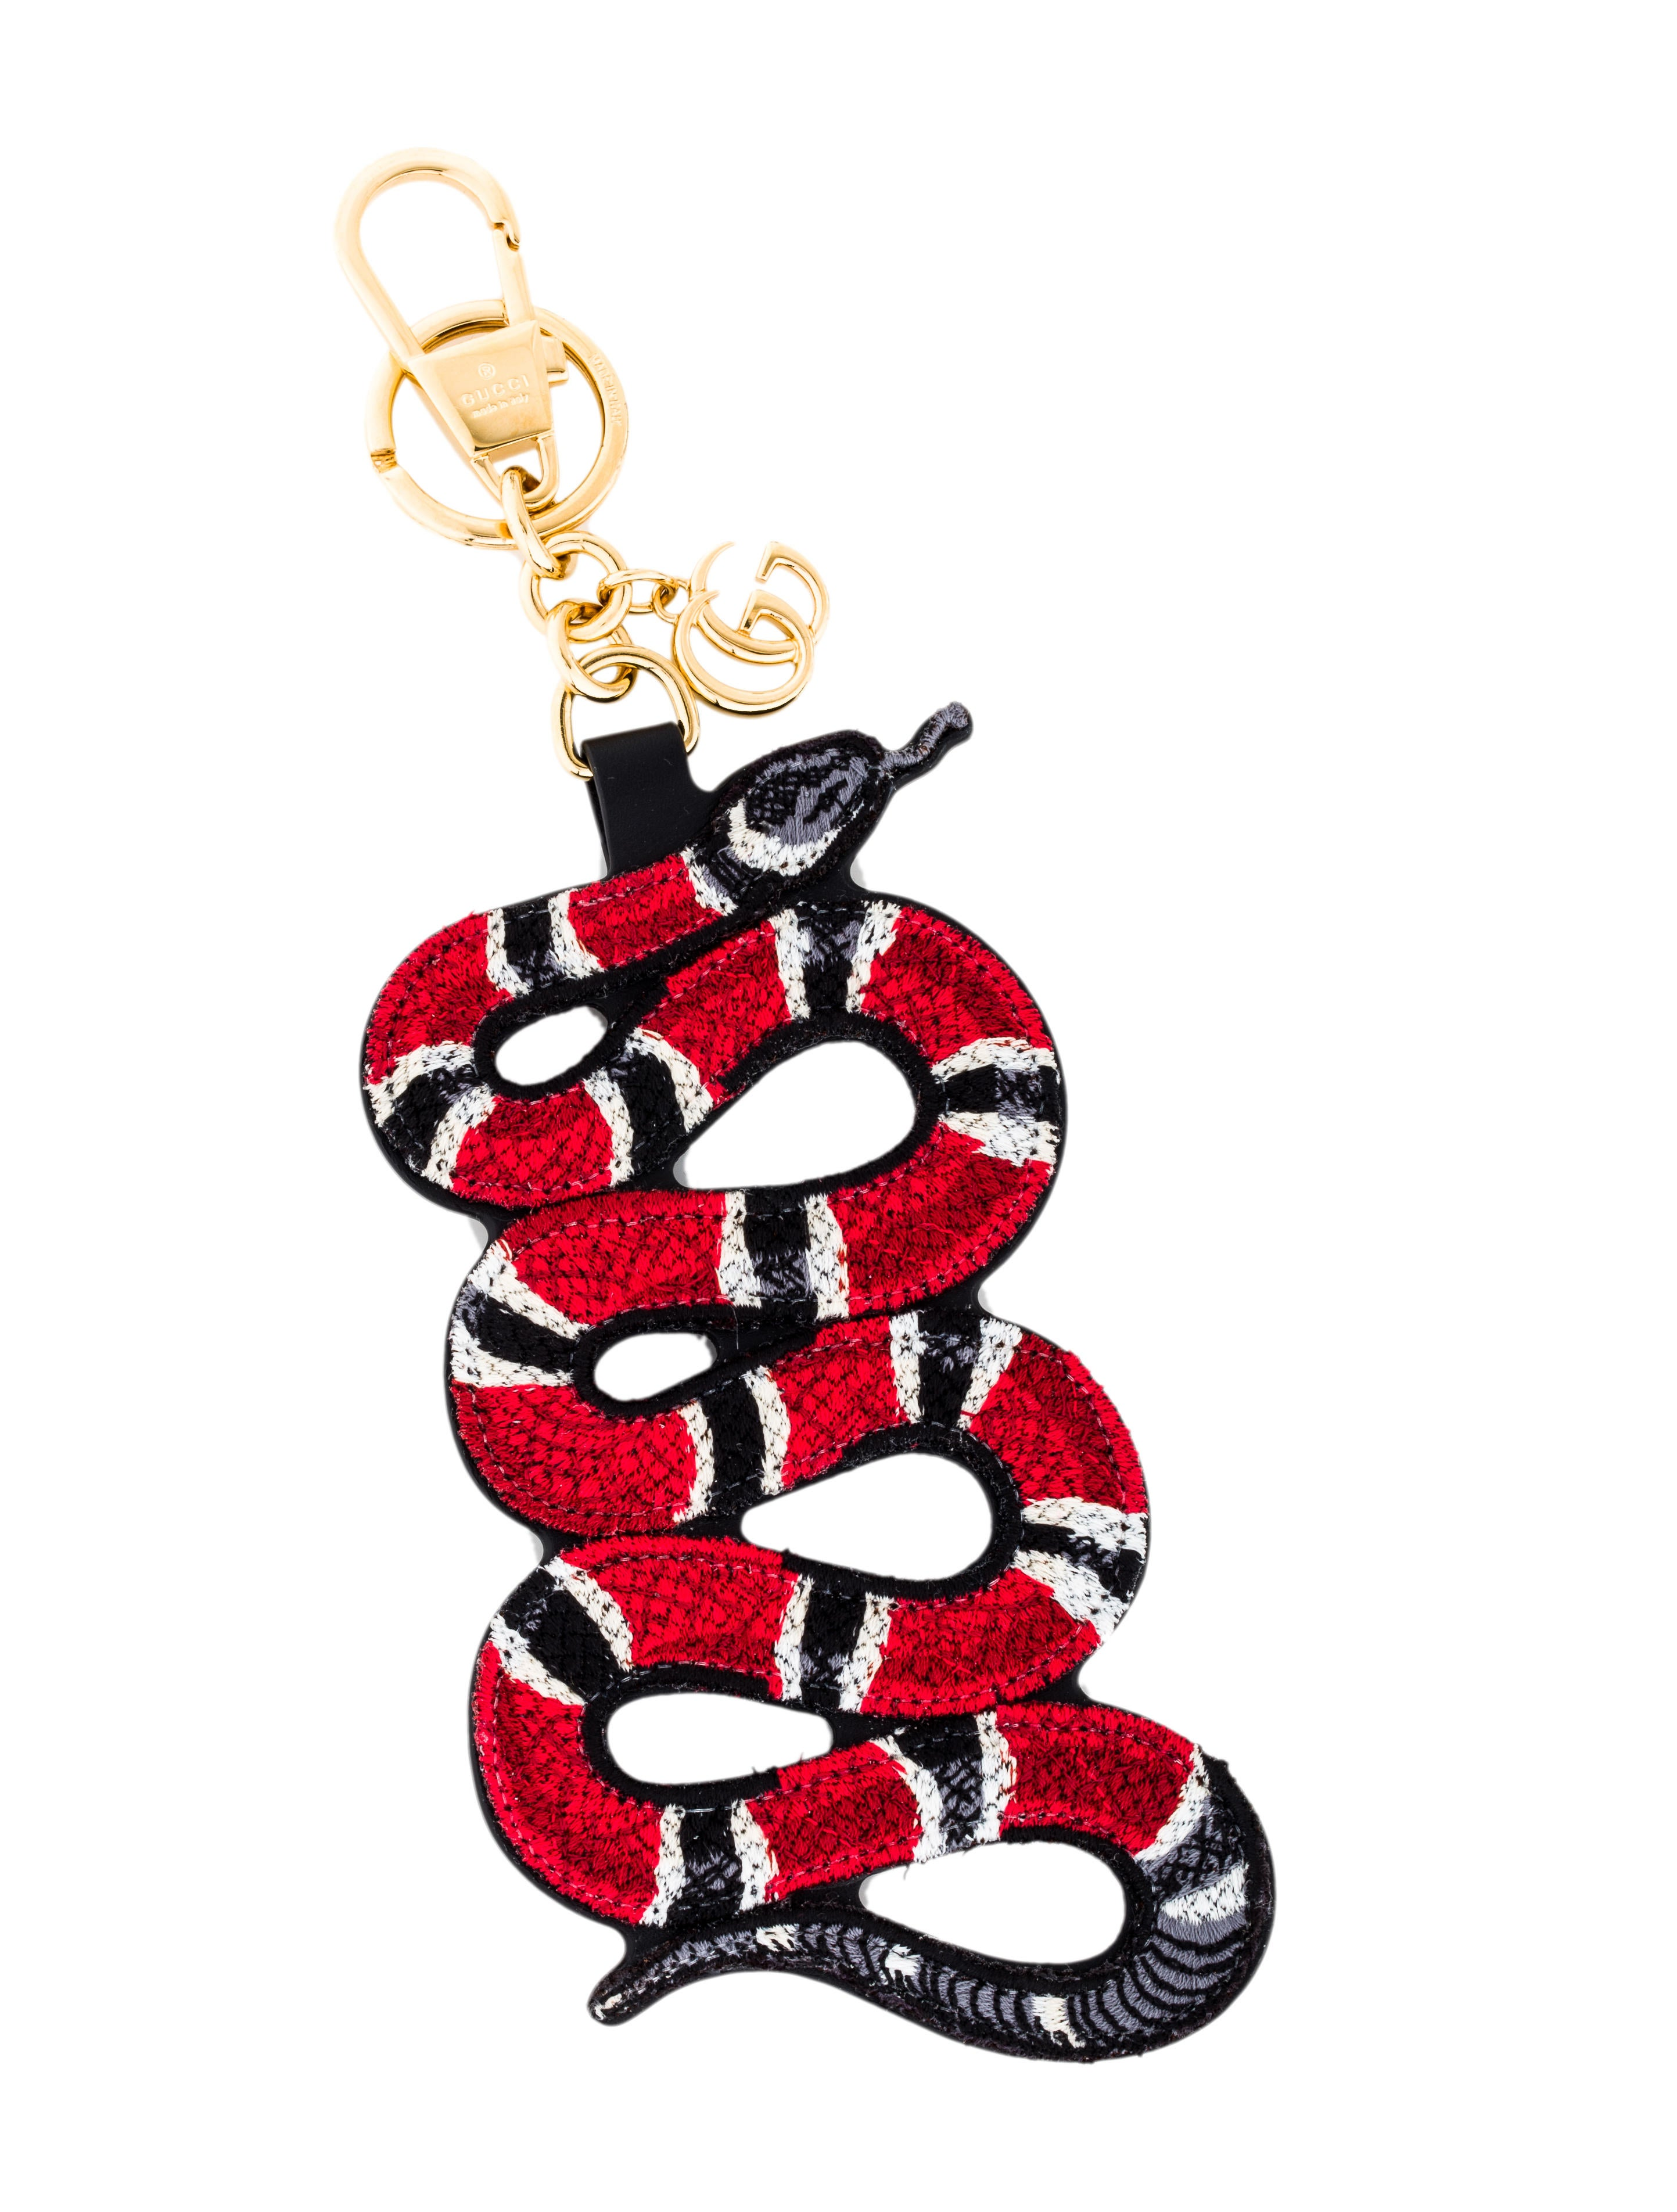 fc6cf95d93e Gucci Kingsnake Embroidered Keychain - Accessories - GUC143685